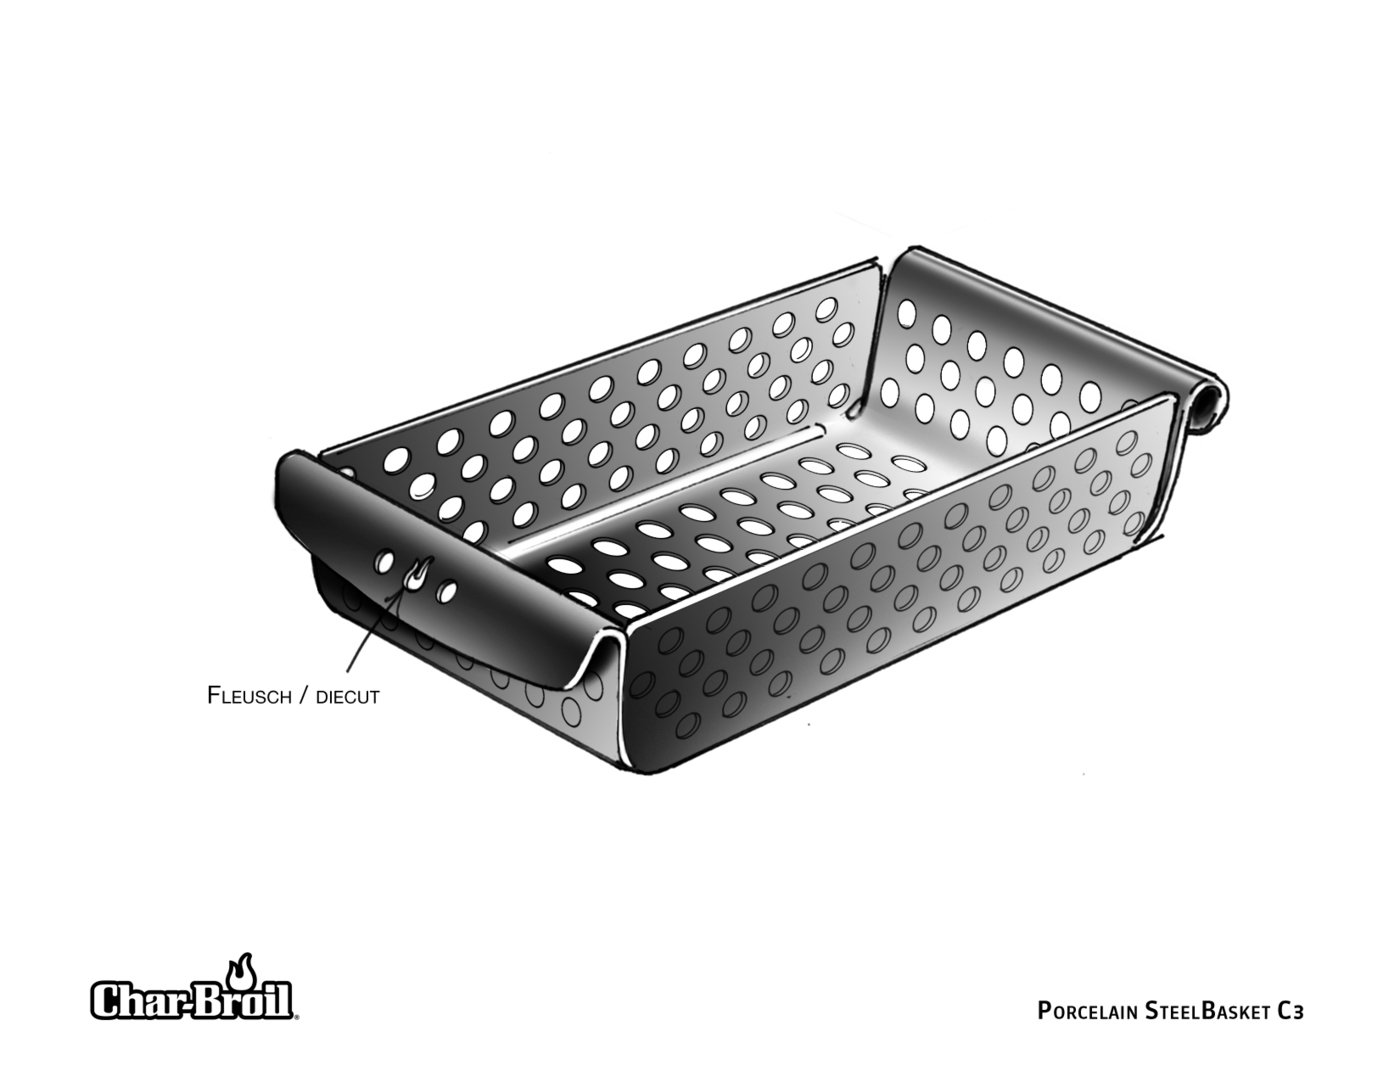 charbroil grilling products concepts by charles floyd at coroflot com rh coroflot com